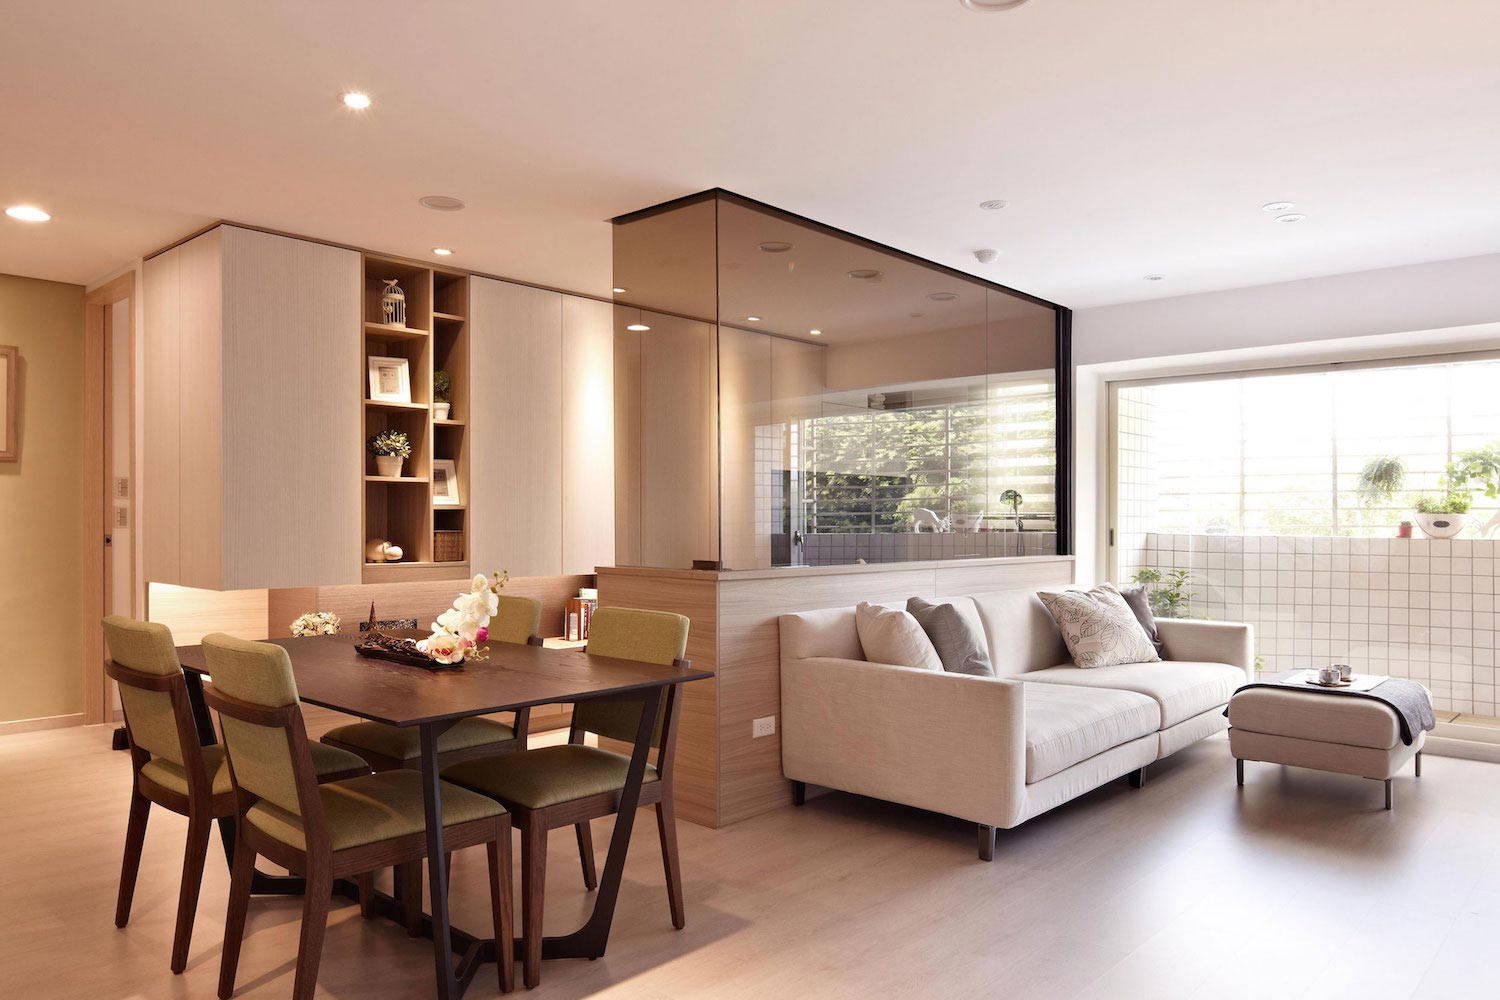 Modern Mr Lu Apartment in Taipei Taiwan by Alfonso Ideas  CAANdesign  Architecture and home